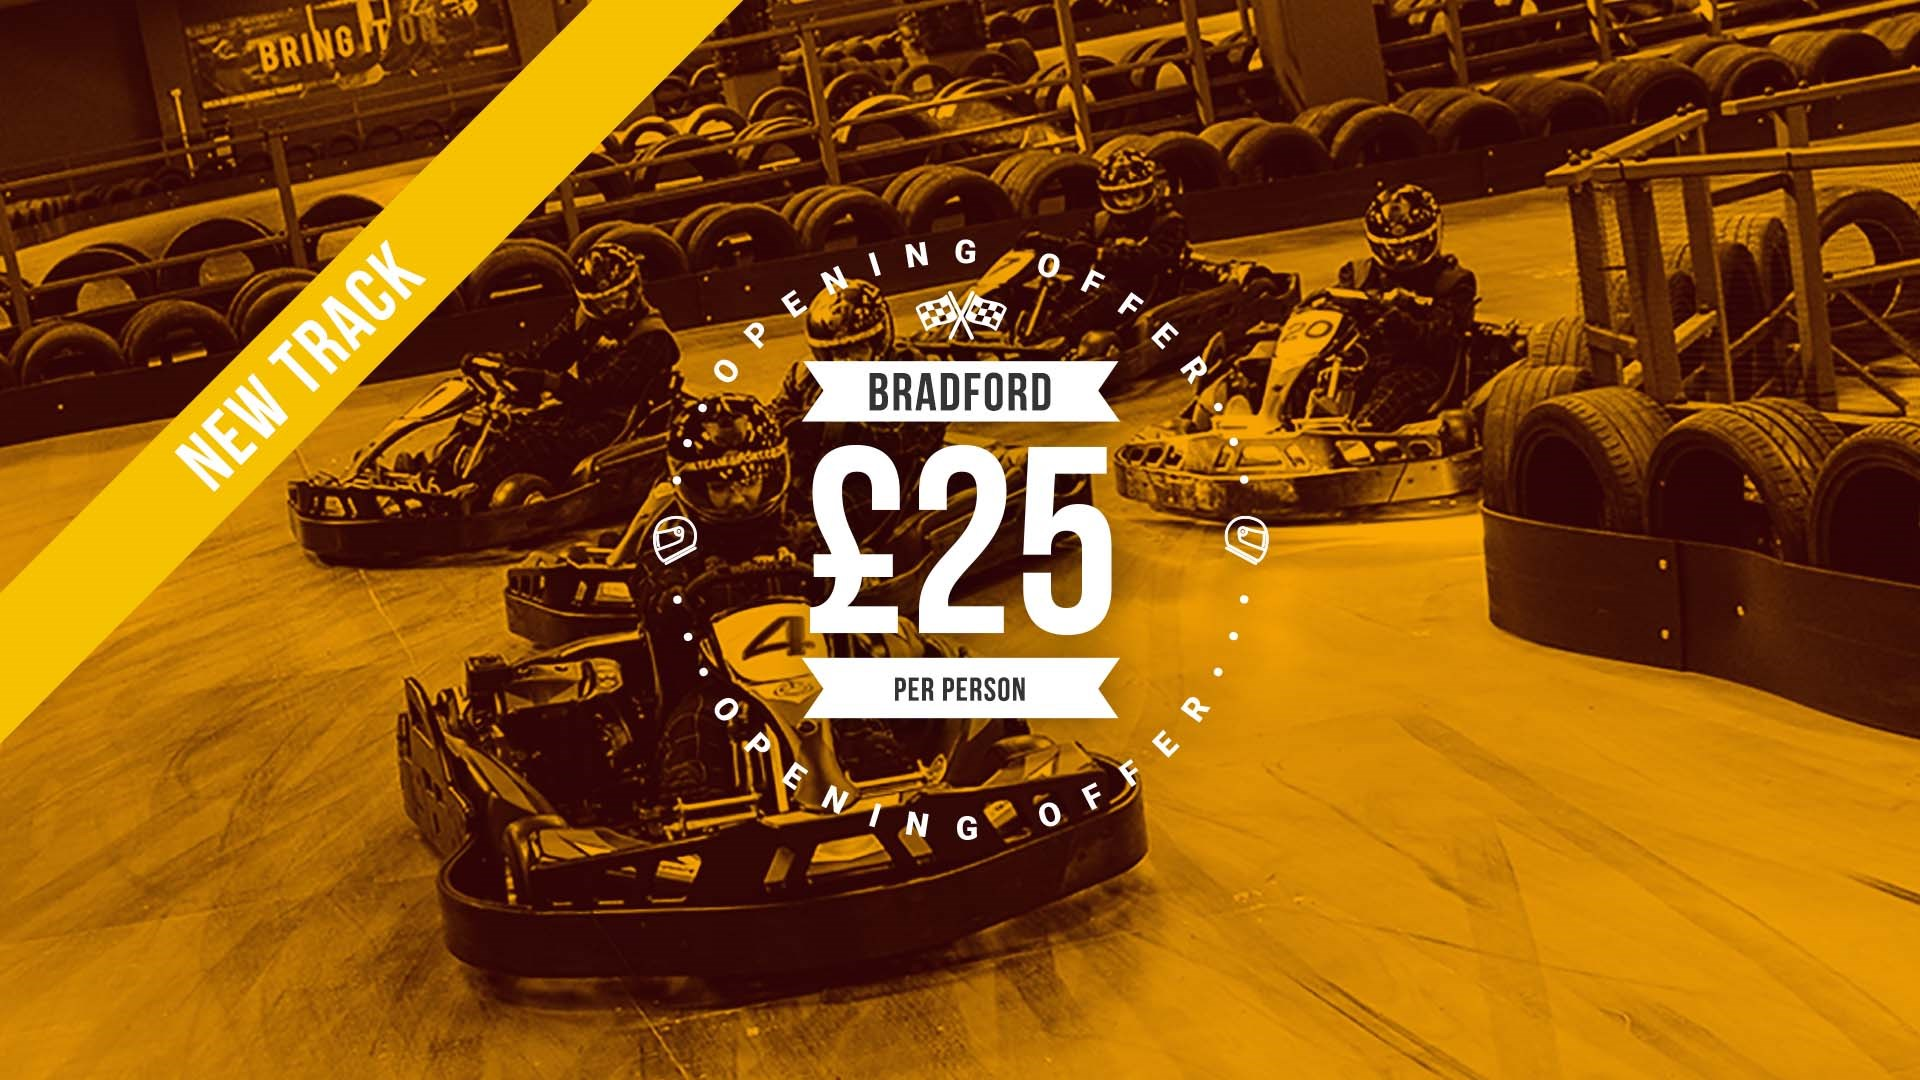 UNBEATABLE GO KARTING OFFERS - Bradford Opening Offer